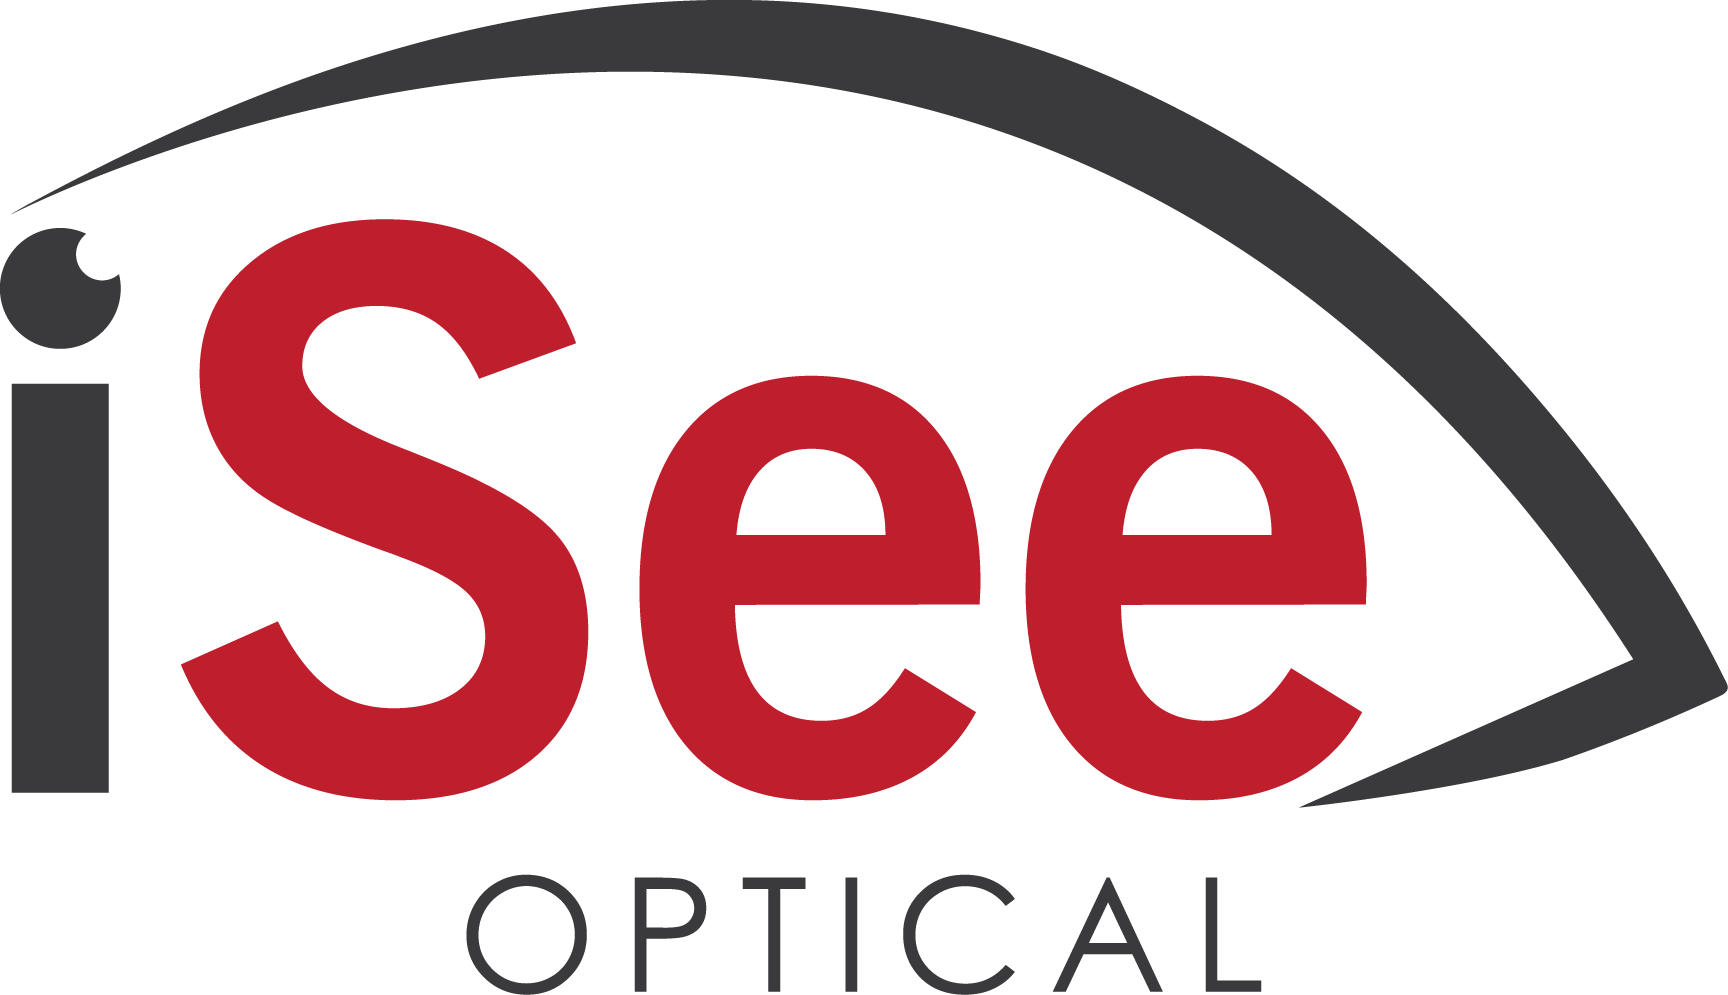 iSee Optical